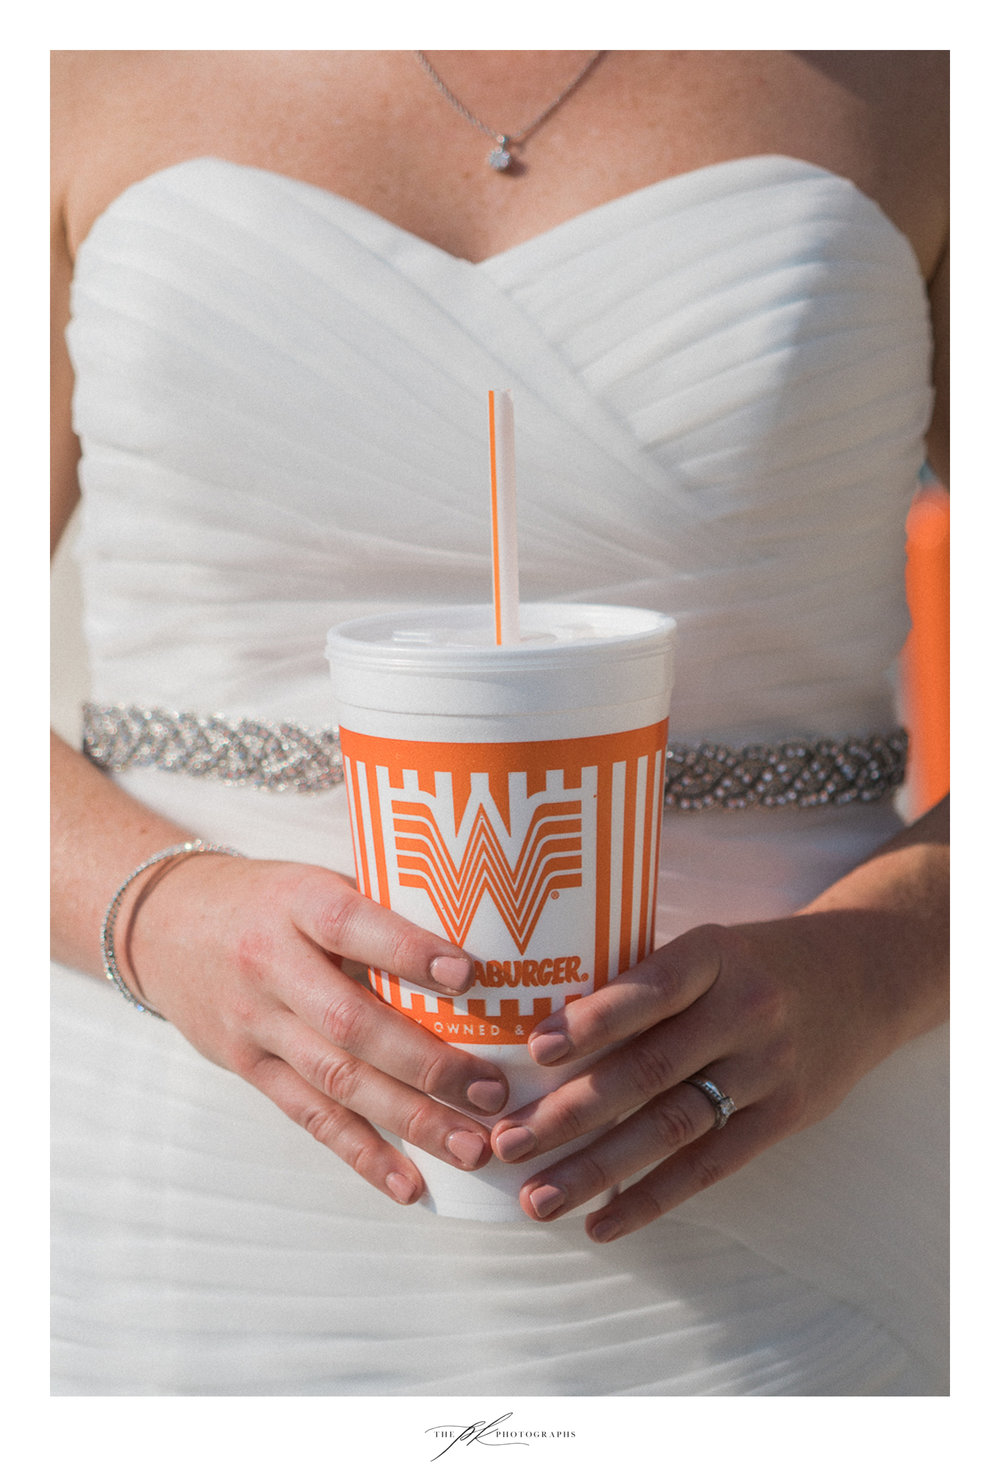 Whatabride - Katie decided to stop at Whataburger on the way to their wedding reception.